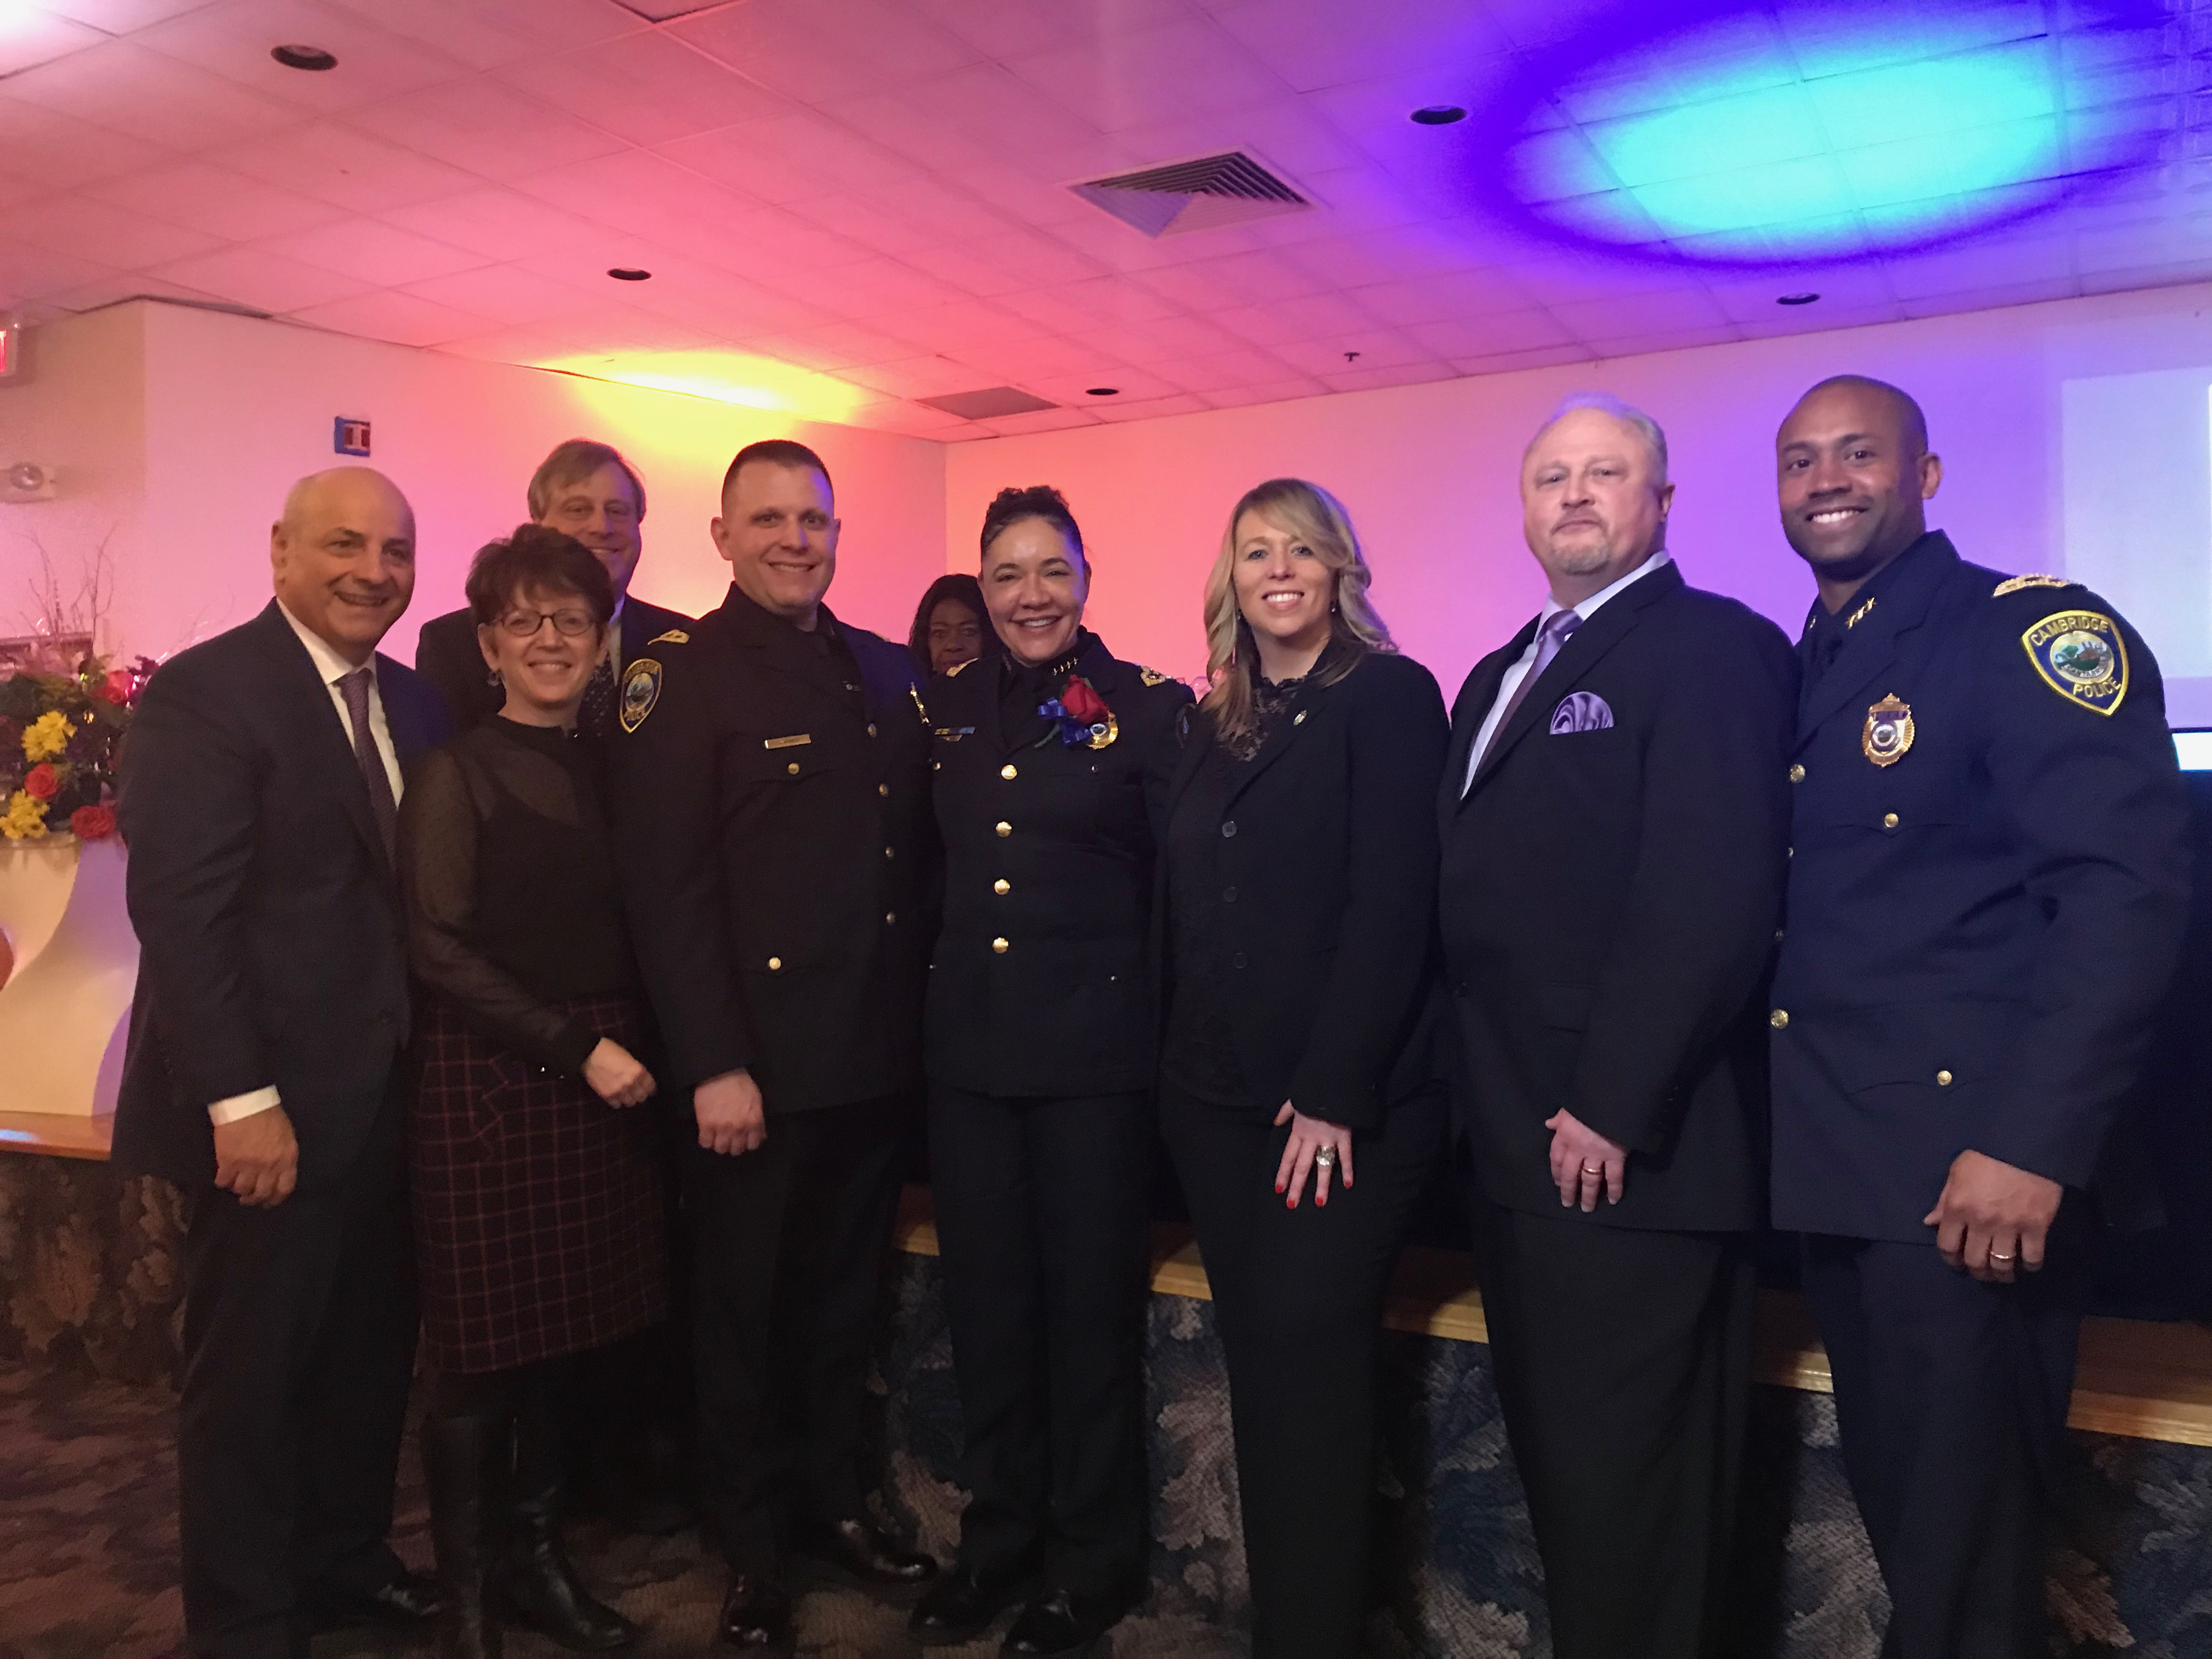 Cambridge Police Superintendent Elow Recognized as Social Justice Leader in the Community